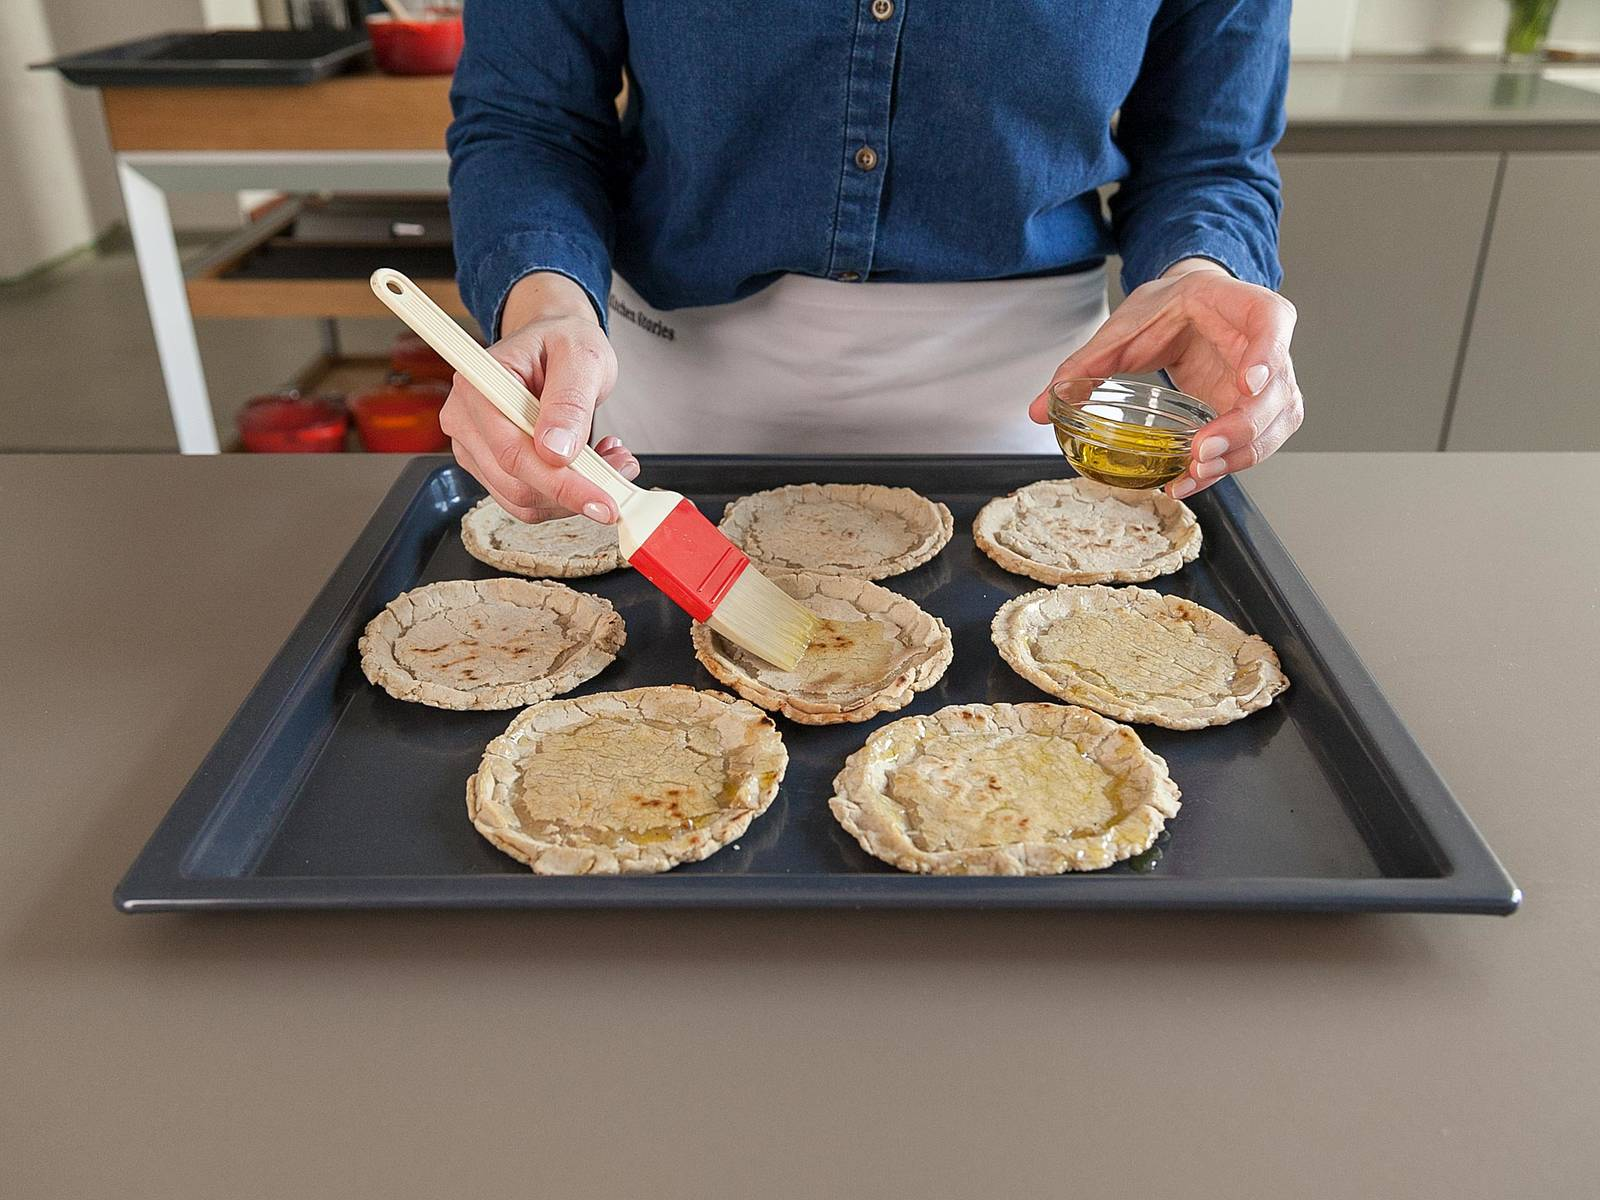 Meanwhile, transfer sopes to a baking sheet and brush both sides with olive oil. Toast at 200°C/400°F oven for approx. 10 – 12 min.